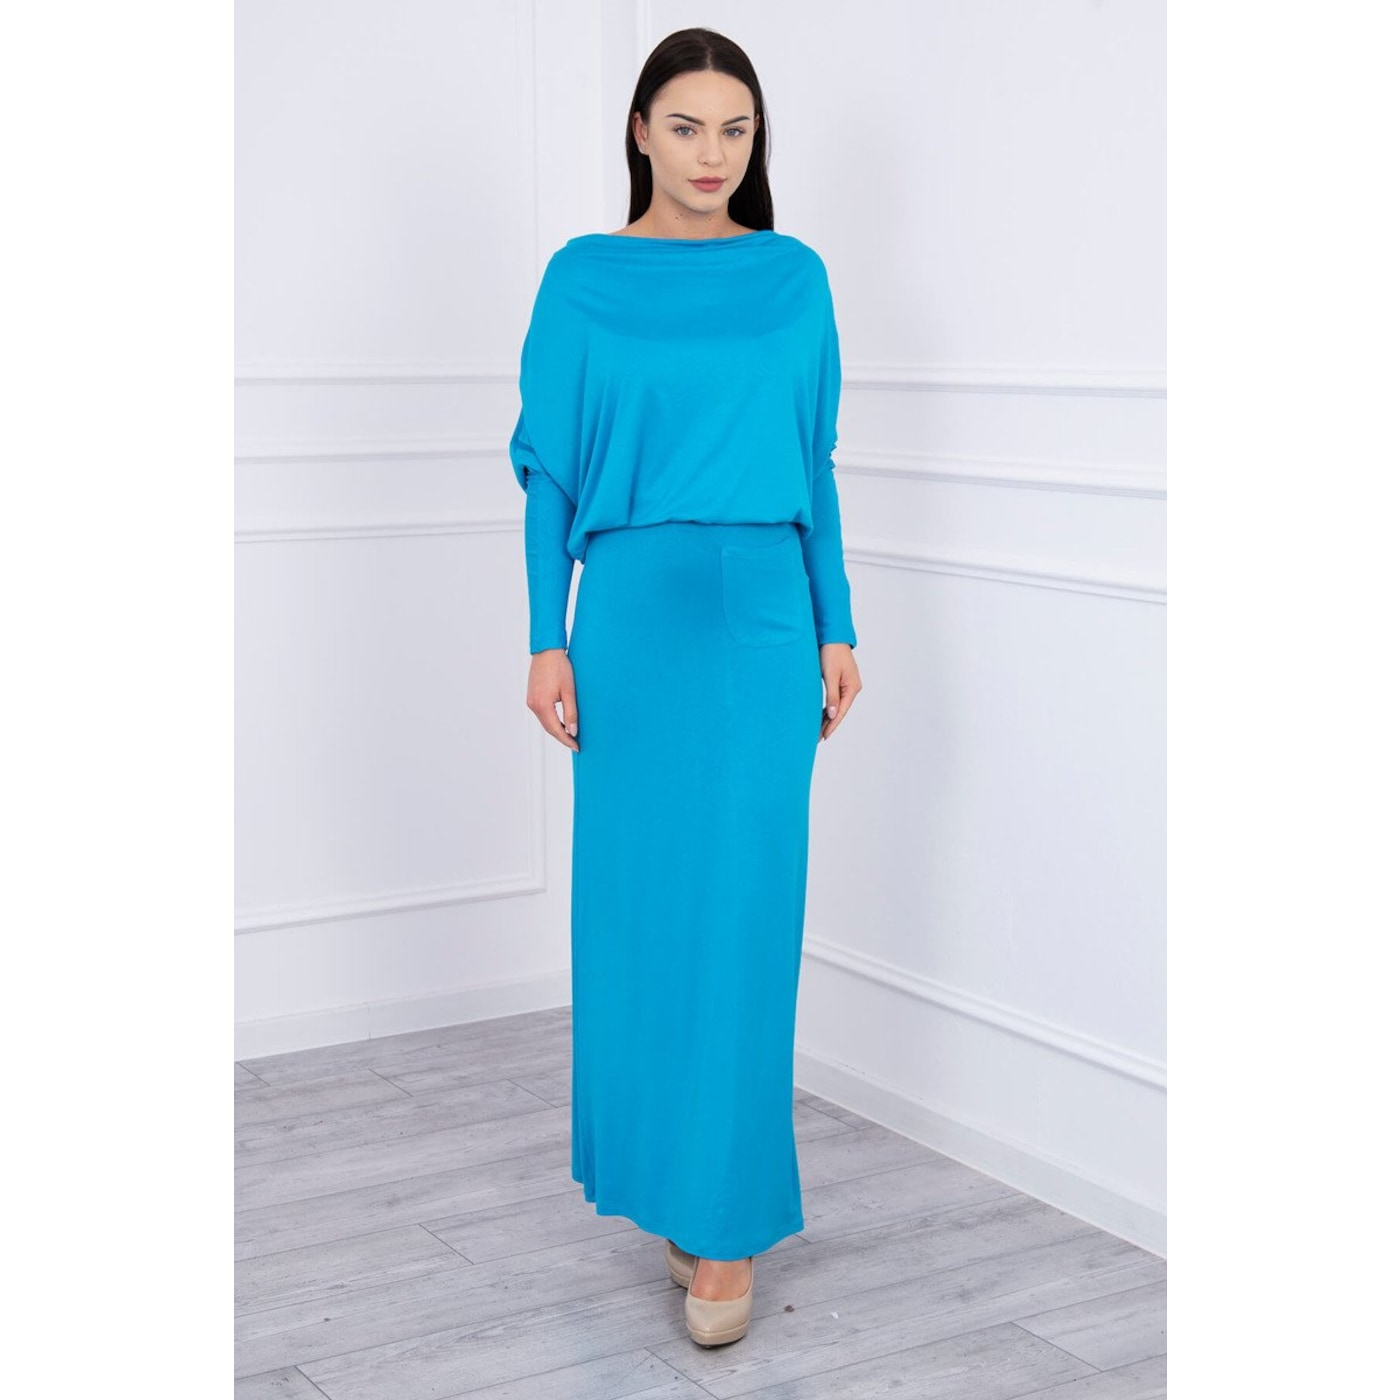 Dress with water in the neckline